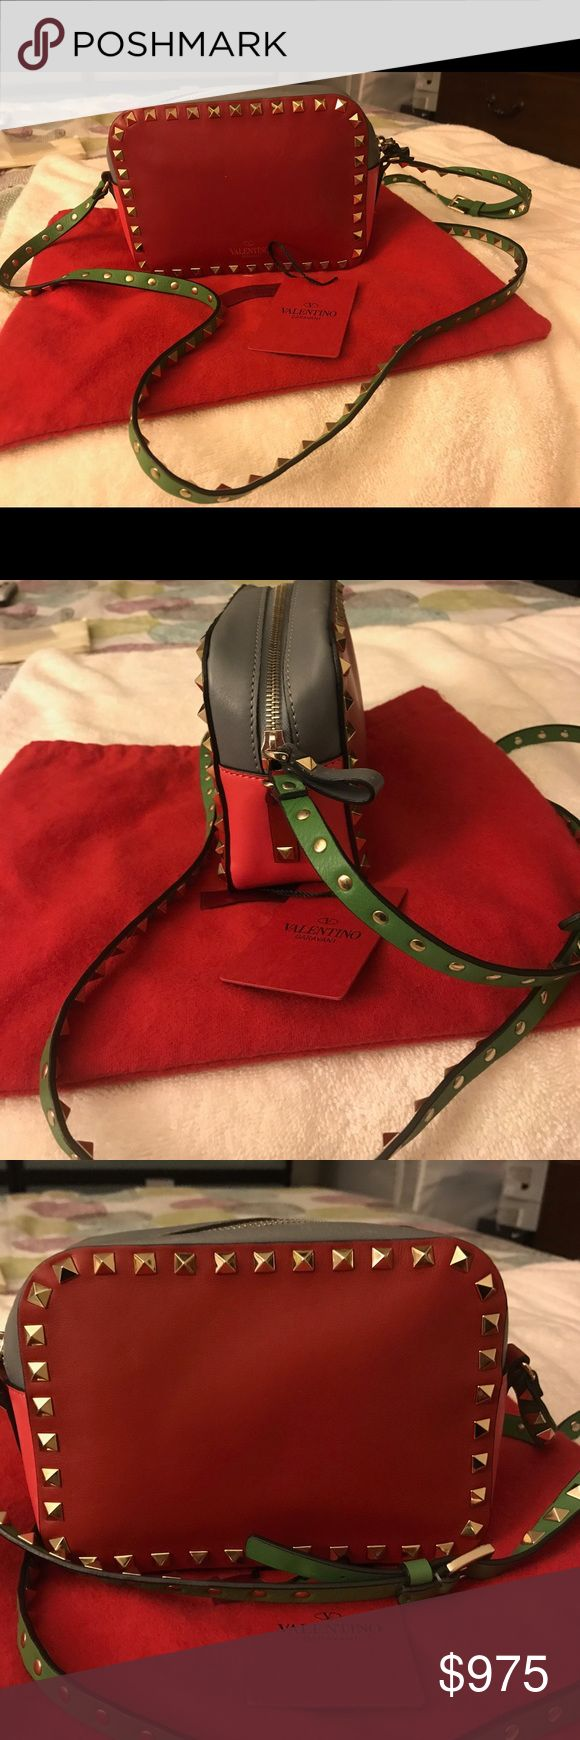 Valentino Garavani Multi Color Shoulder Bag in Red Valentino Garavani Cross body bag in multicolor calfskin leather. The unique color combination is specific to the style. All around platinum finishing studs detail. Zip closure. Cotton lining. Internal open pocket. Adjustable studded strap. Dimensions H 30XW42XD3 cm / H11''XW16.2''XD1''.  Made in Italy. Details Studs Logo detail Multicolor Pattern Zip closure Internal pocket Adjustable shoulder Valentino Garavani Bags Crossbody Bags